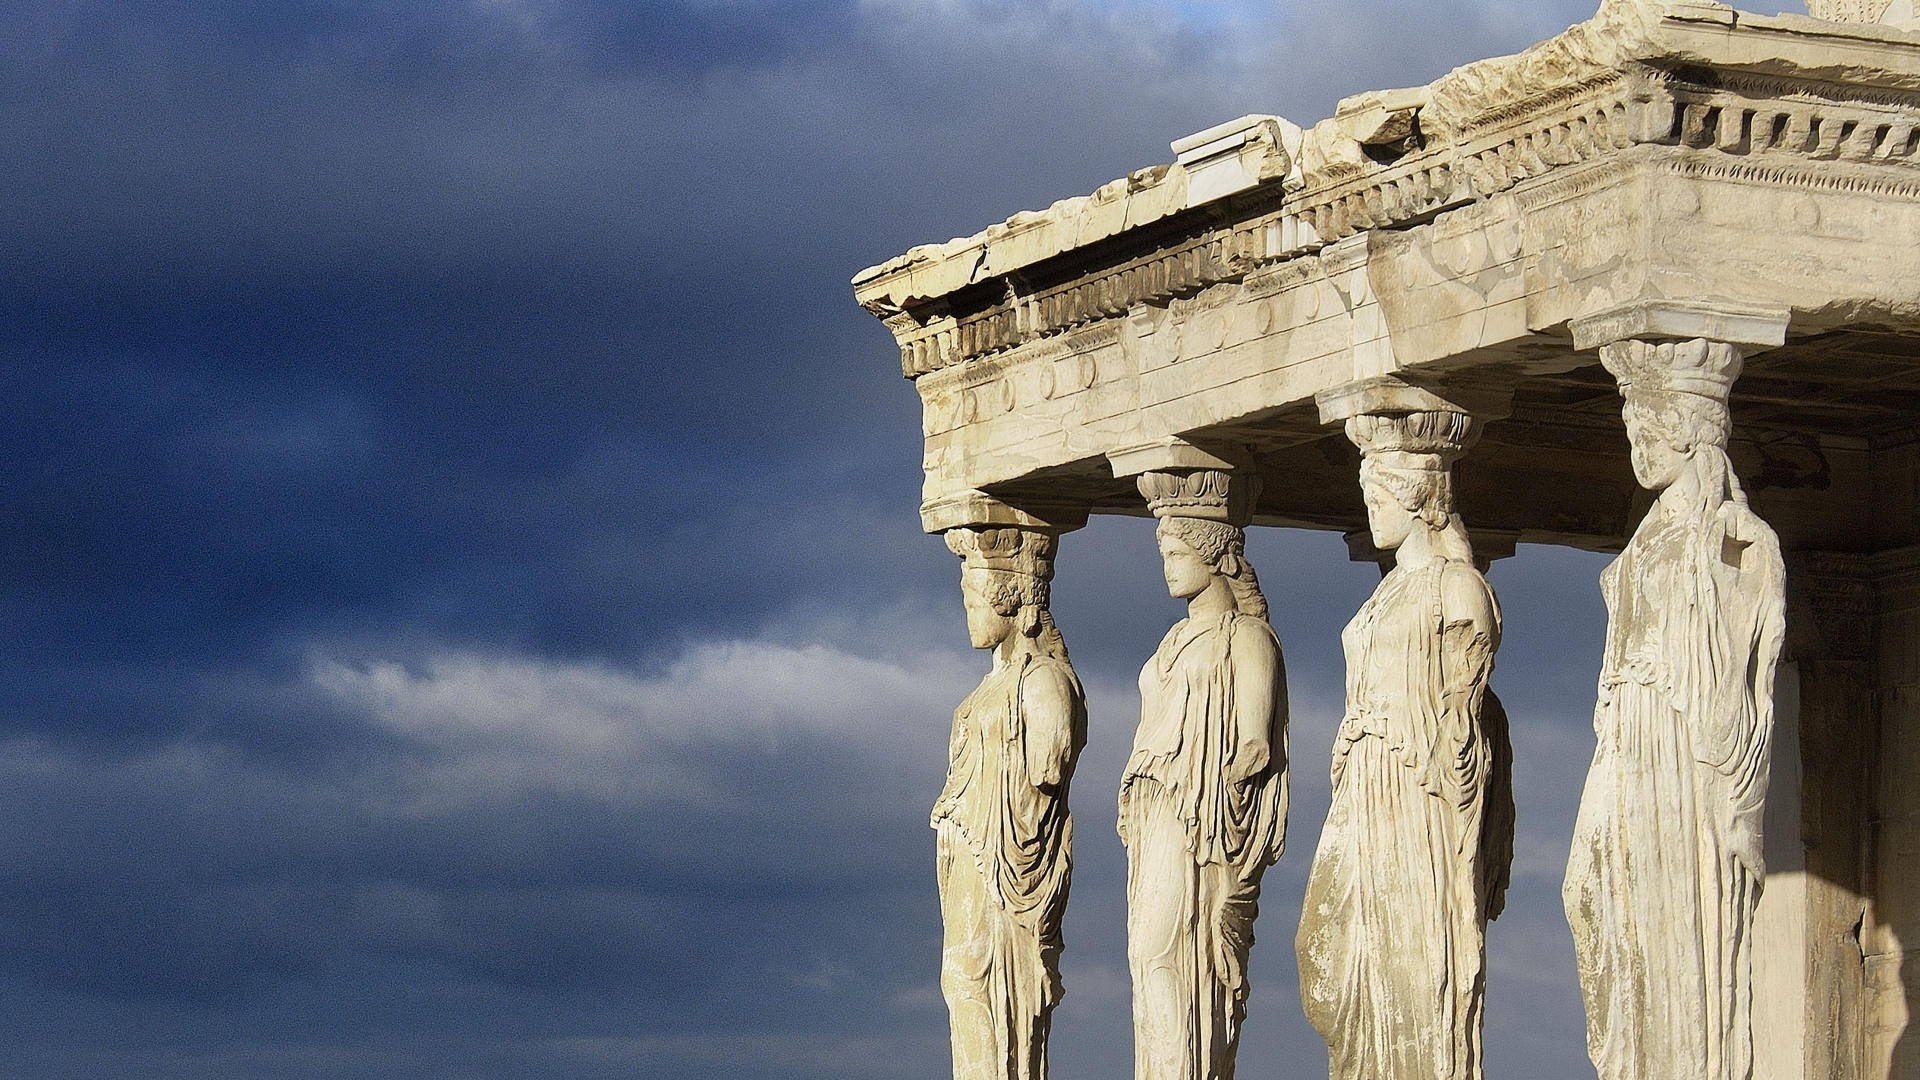 Res: 1920x1080, Decorative columns in Athens